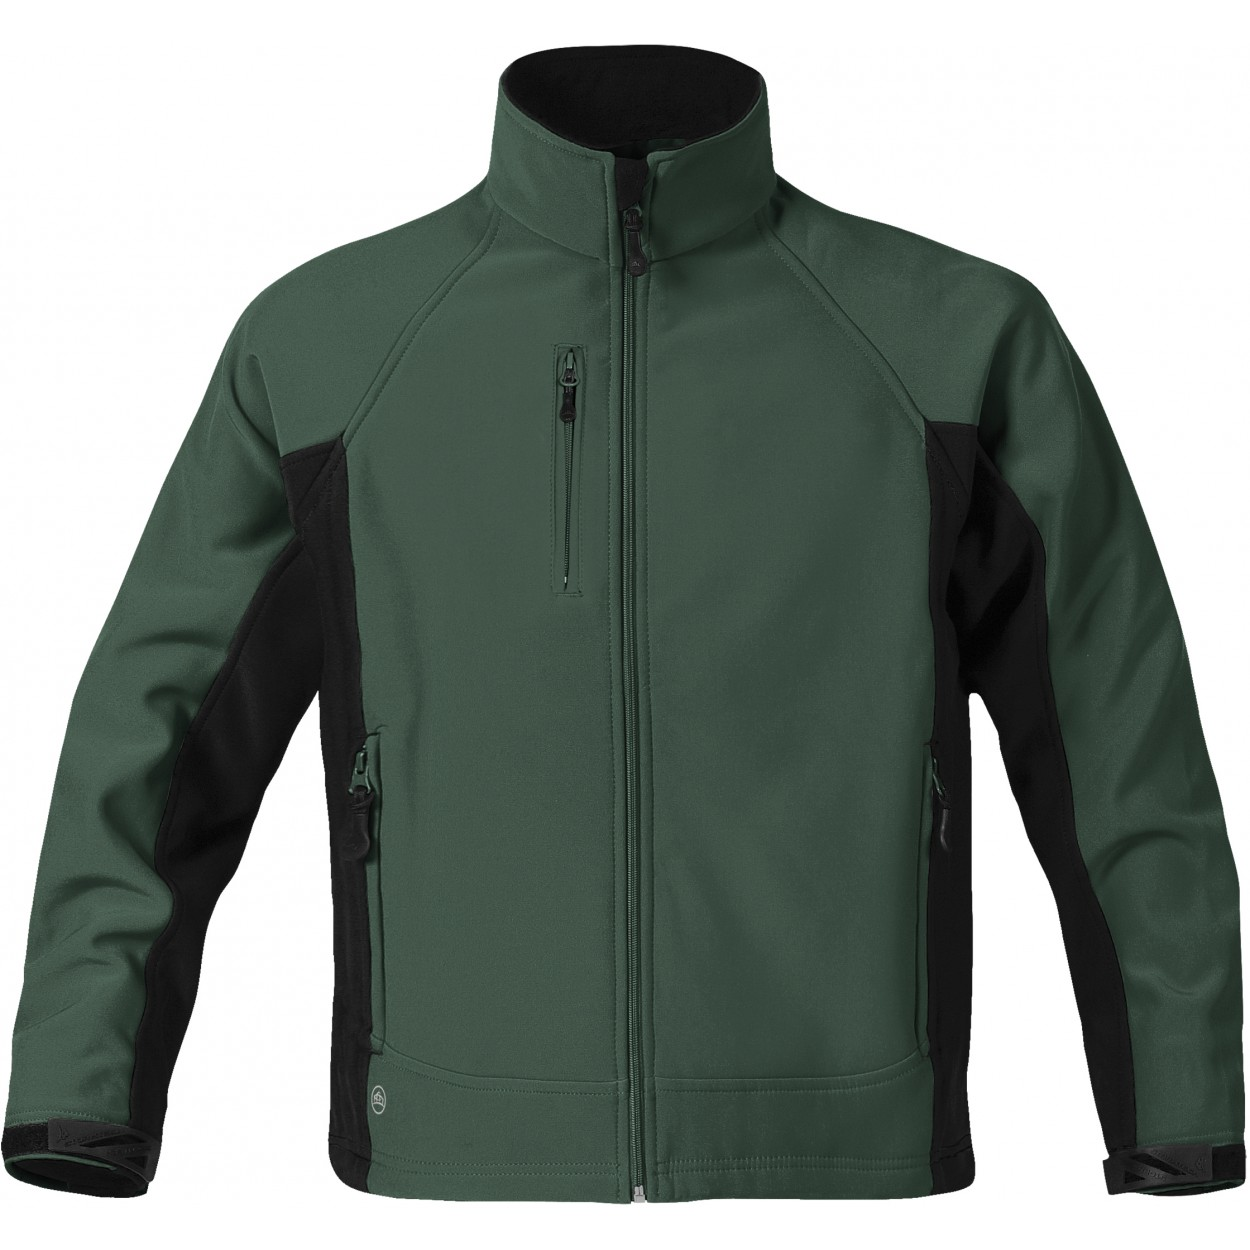 STORMTECH CXJ-1 MENS CREW BONDED THERMAL INSULATED JACKET